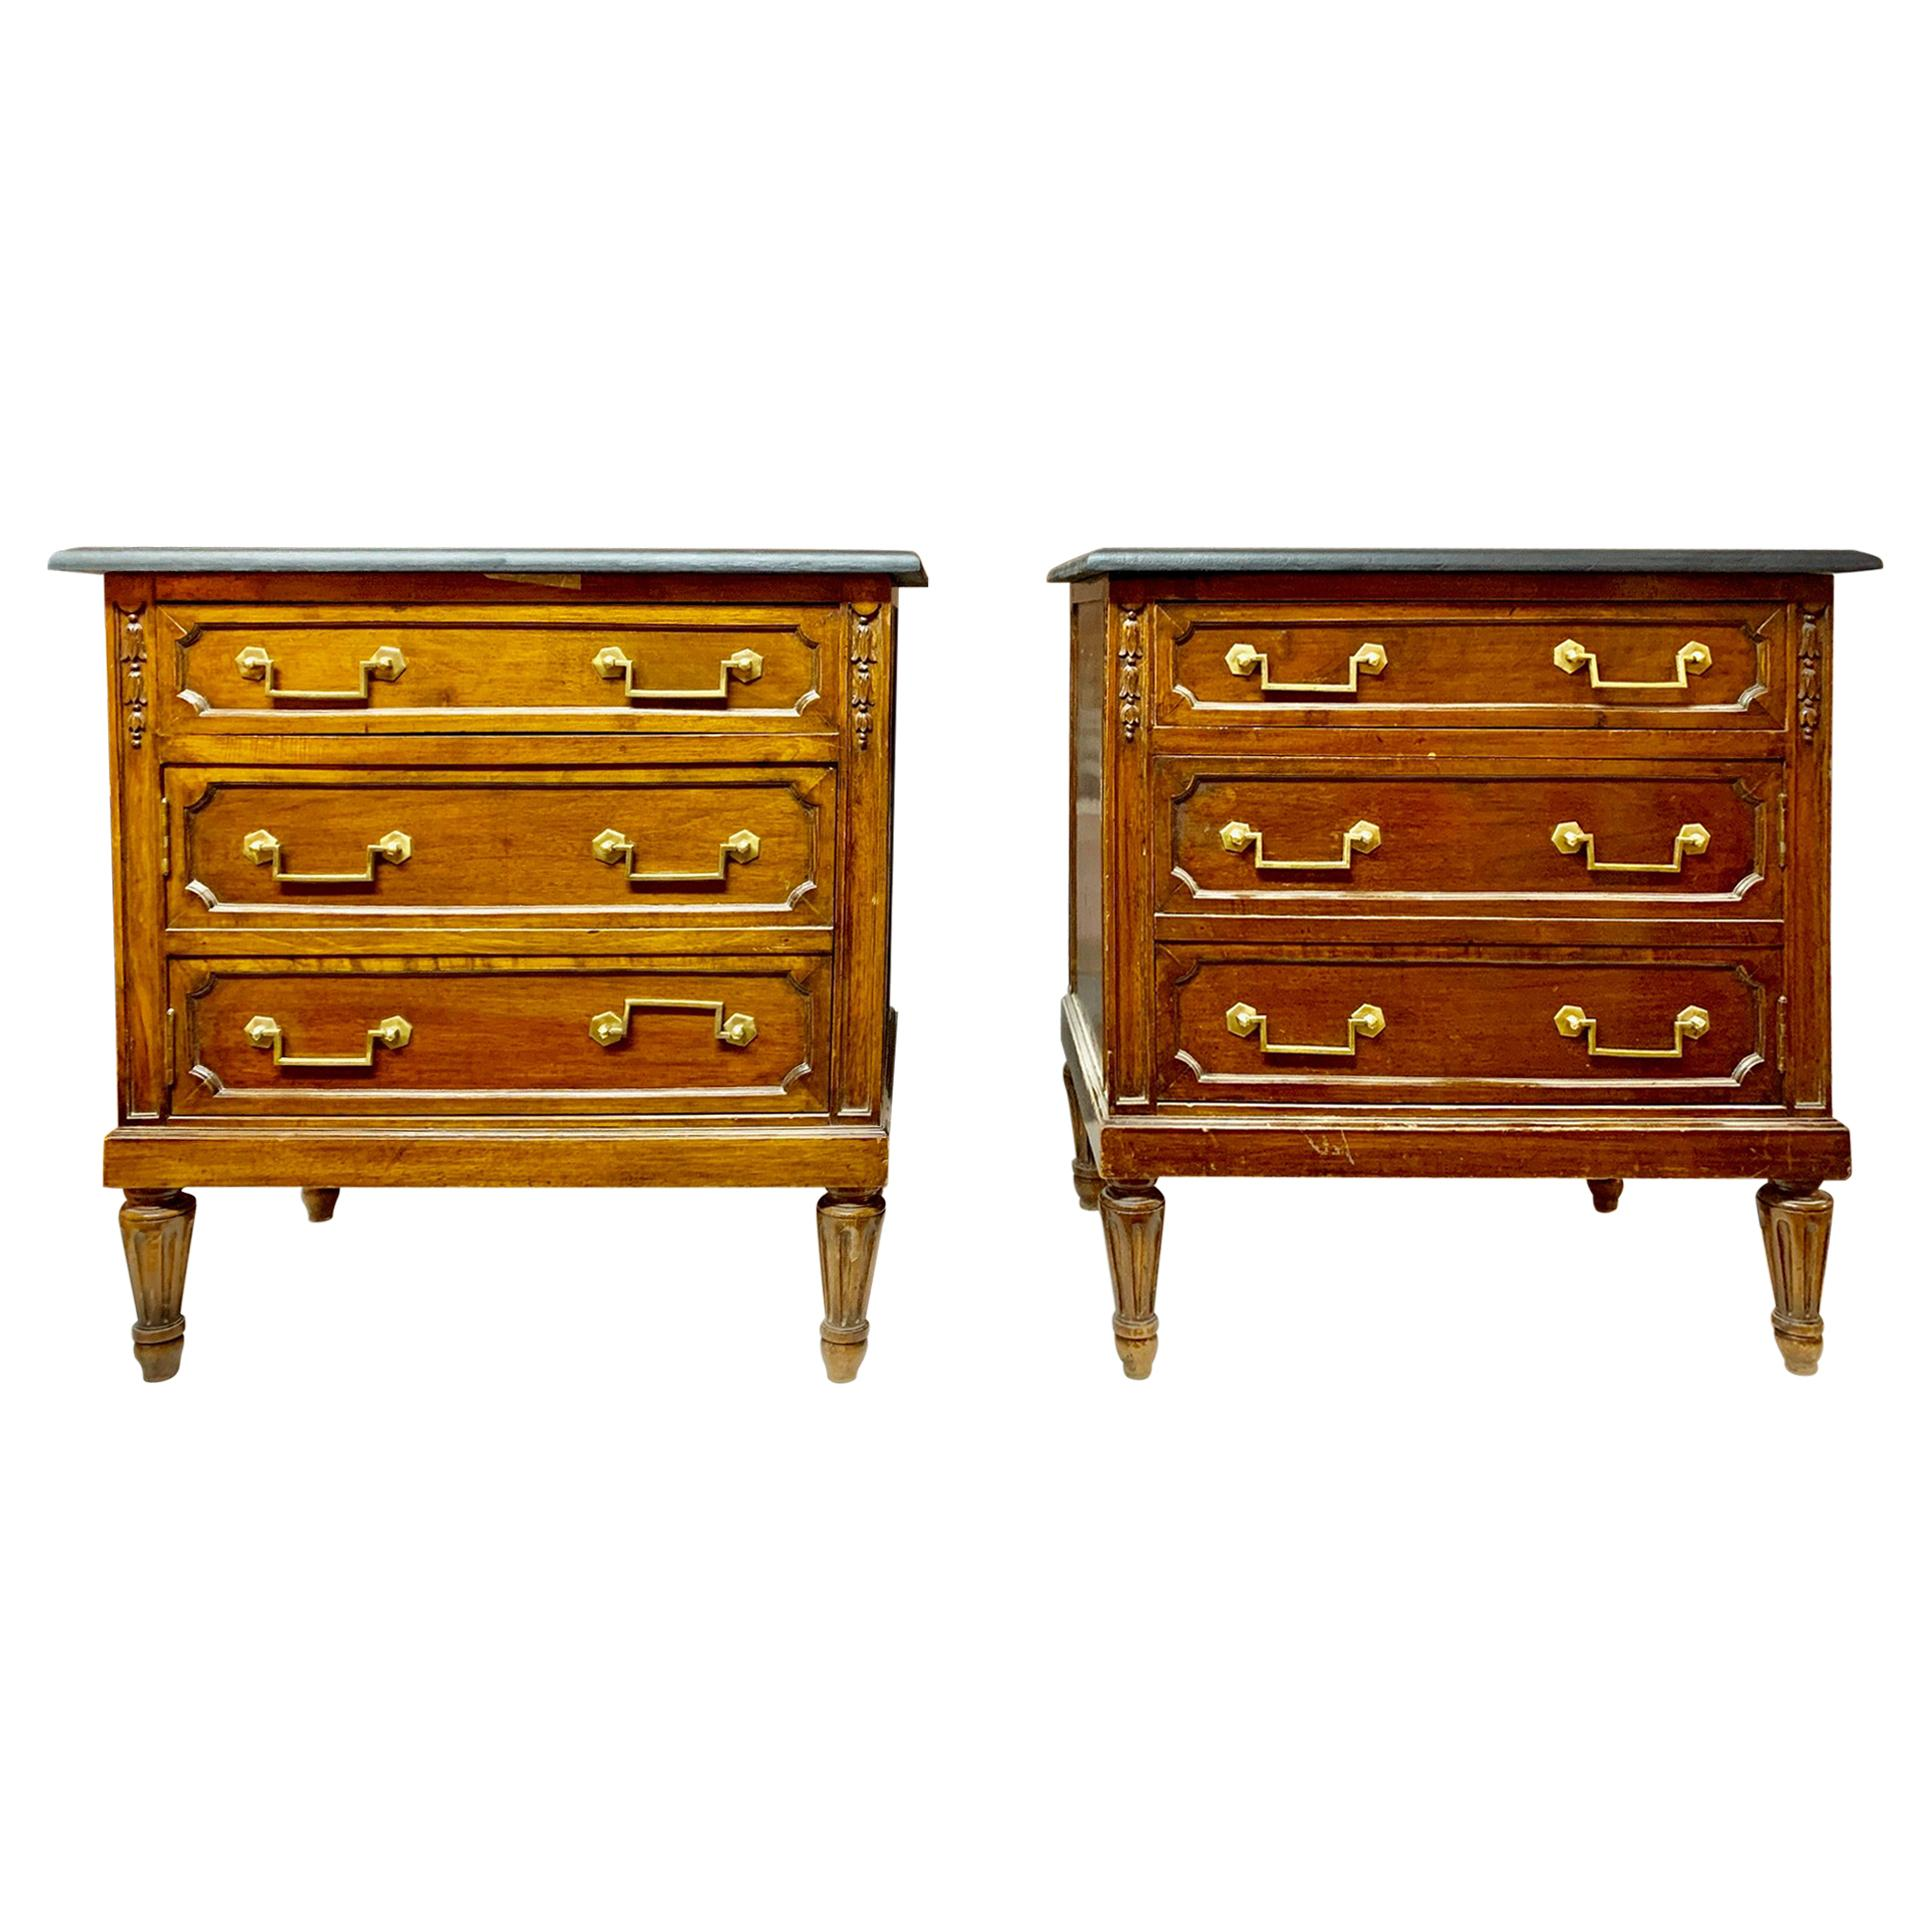 Pair of 20th Century Walnut Spanish Louis XVI Style Bedside Tables or Commodes